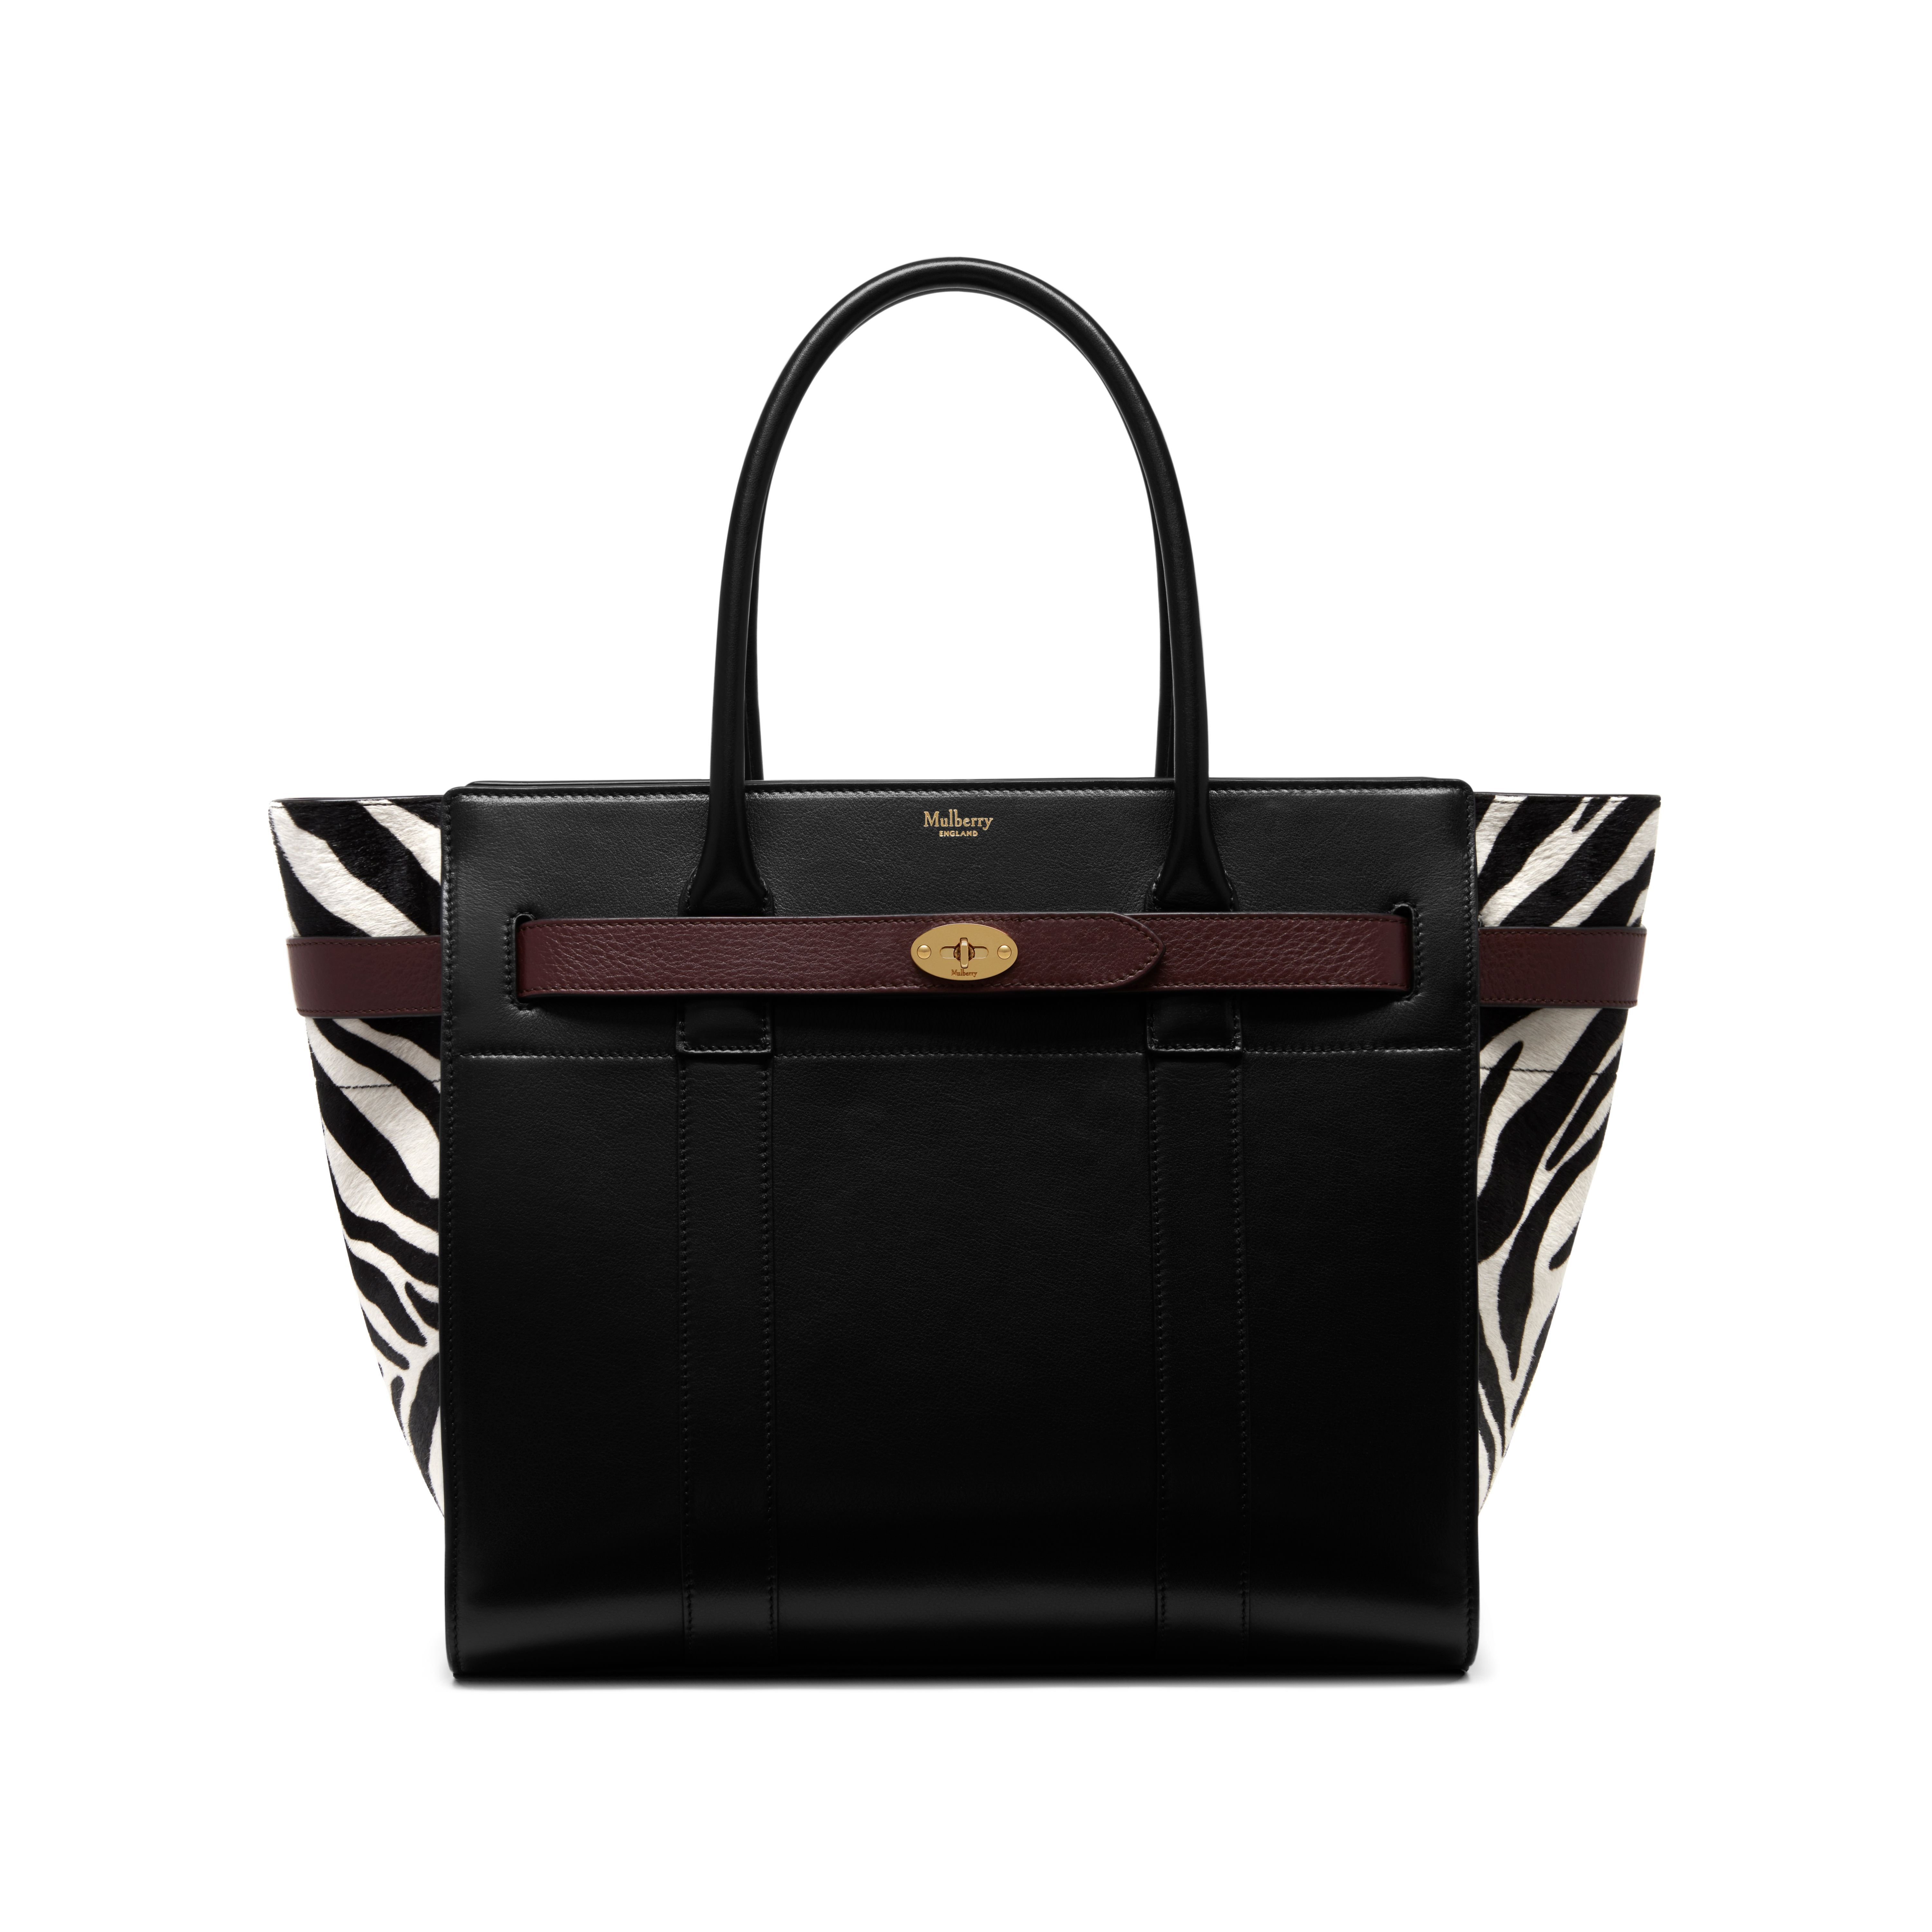 cea8310032 Mulberry - Zipped Bayswater in Black